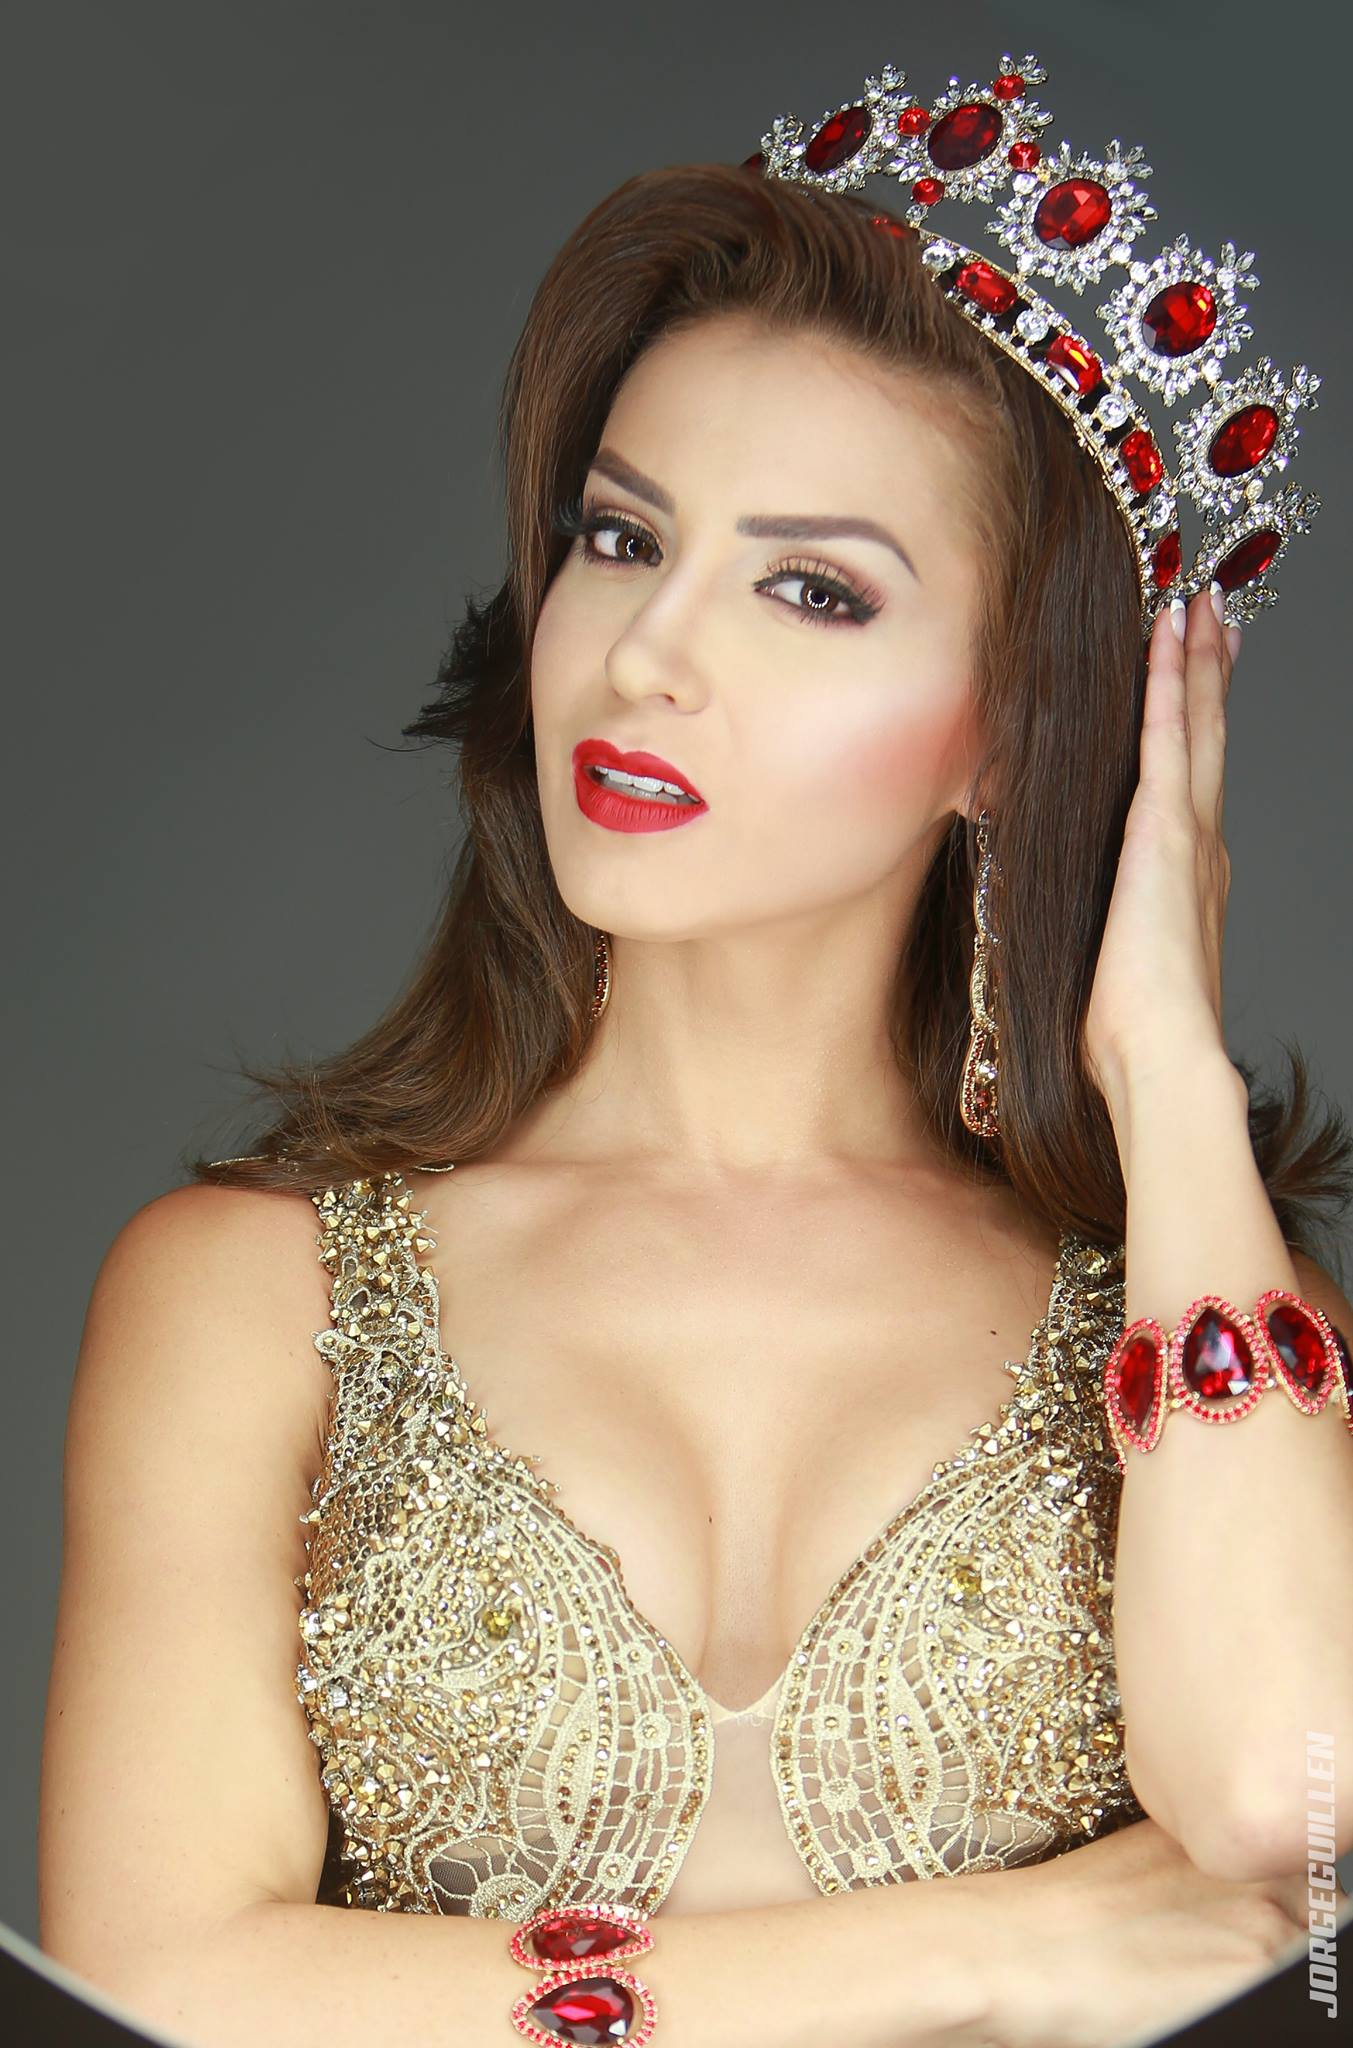 LAS FAVORITAS A MISS COSTA RICA 2019 Paola-chacc3b3n-miss-costa-rica-international-2017